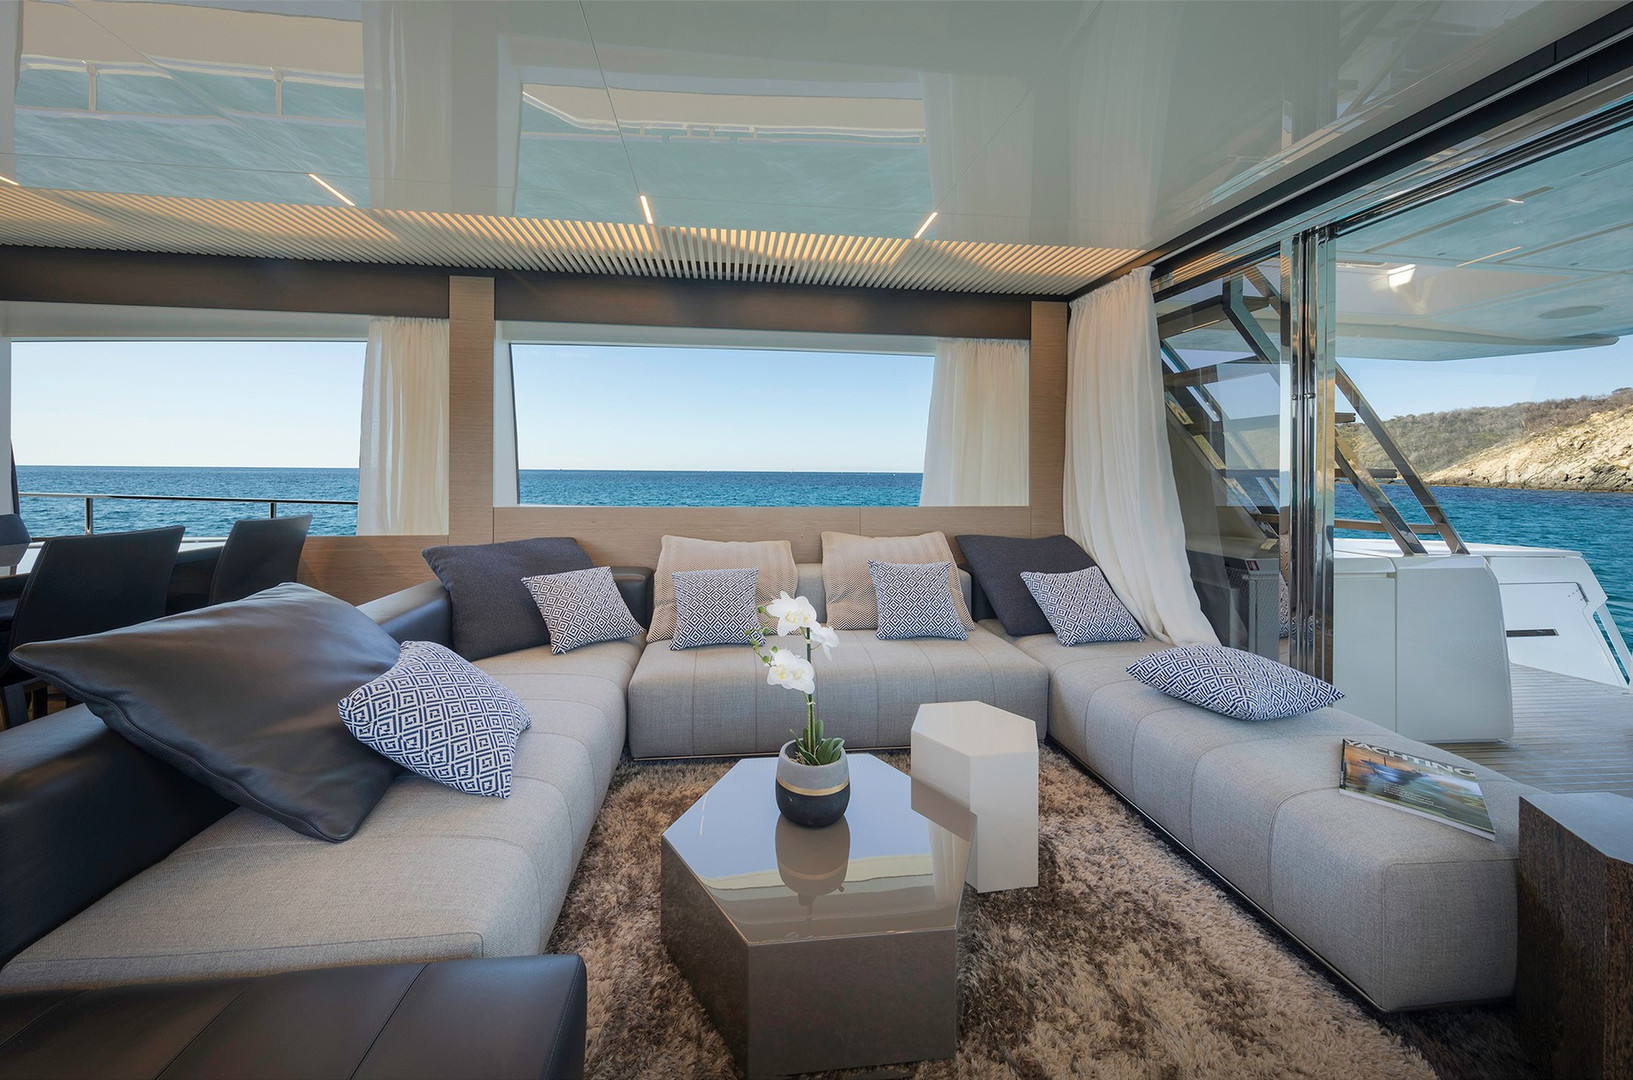 Yacht EPIC - saloon, typical Ferretti Italian sleek styling throughout the interior